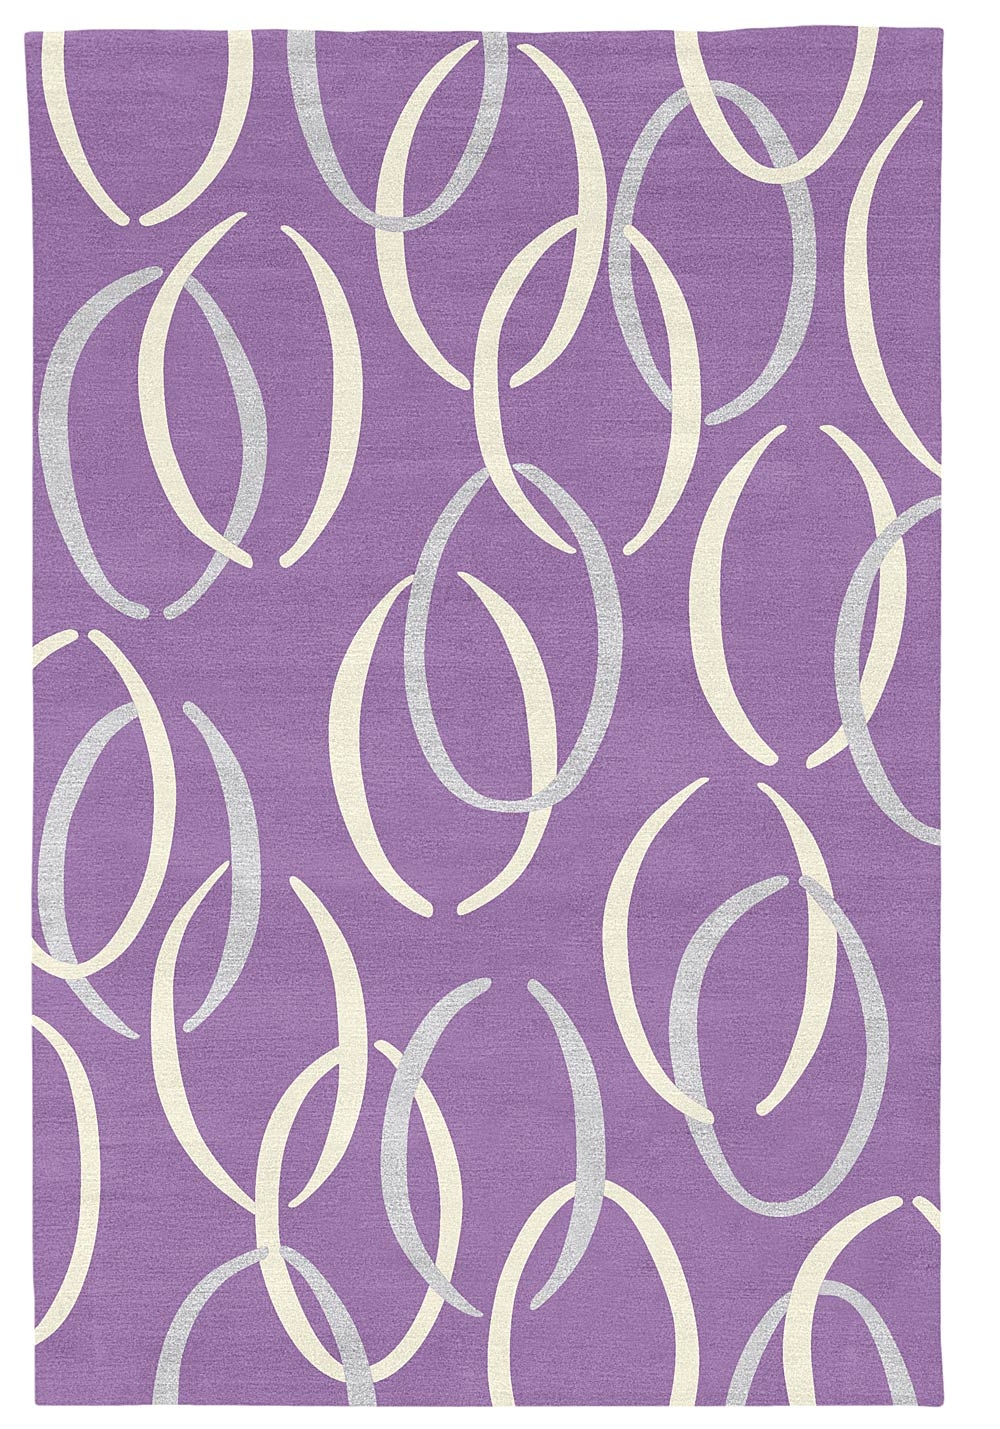 Judy Ross Textiles Rugs Links Judy Ross Textiles Intended For Lilac Rugs (Image 2 of 15)